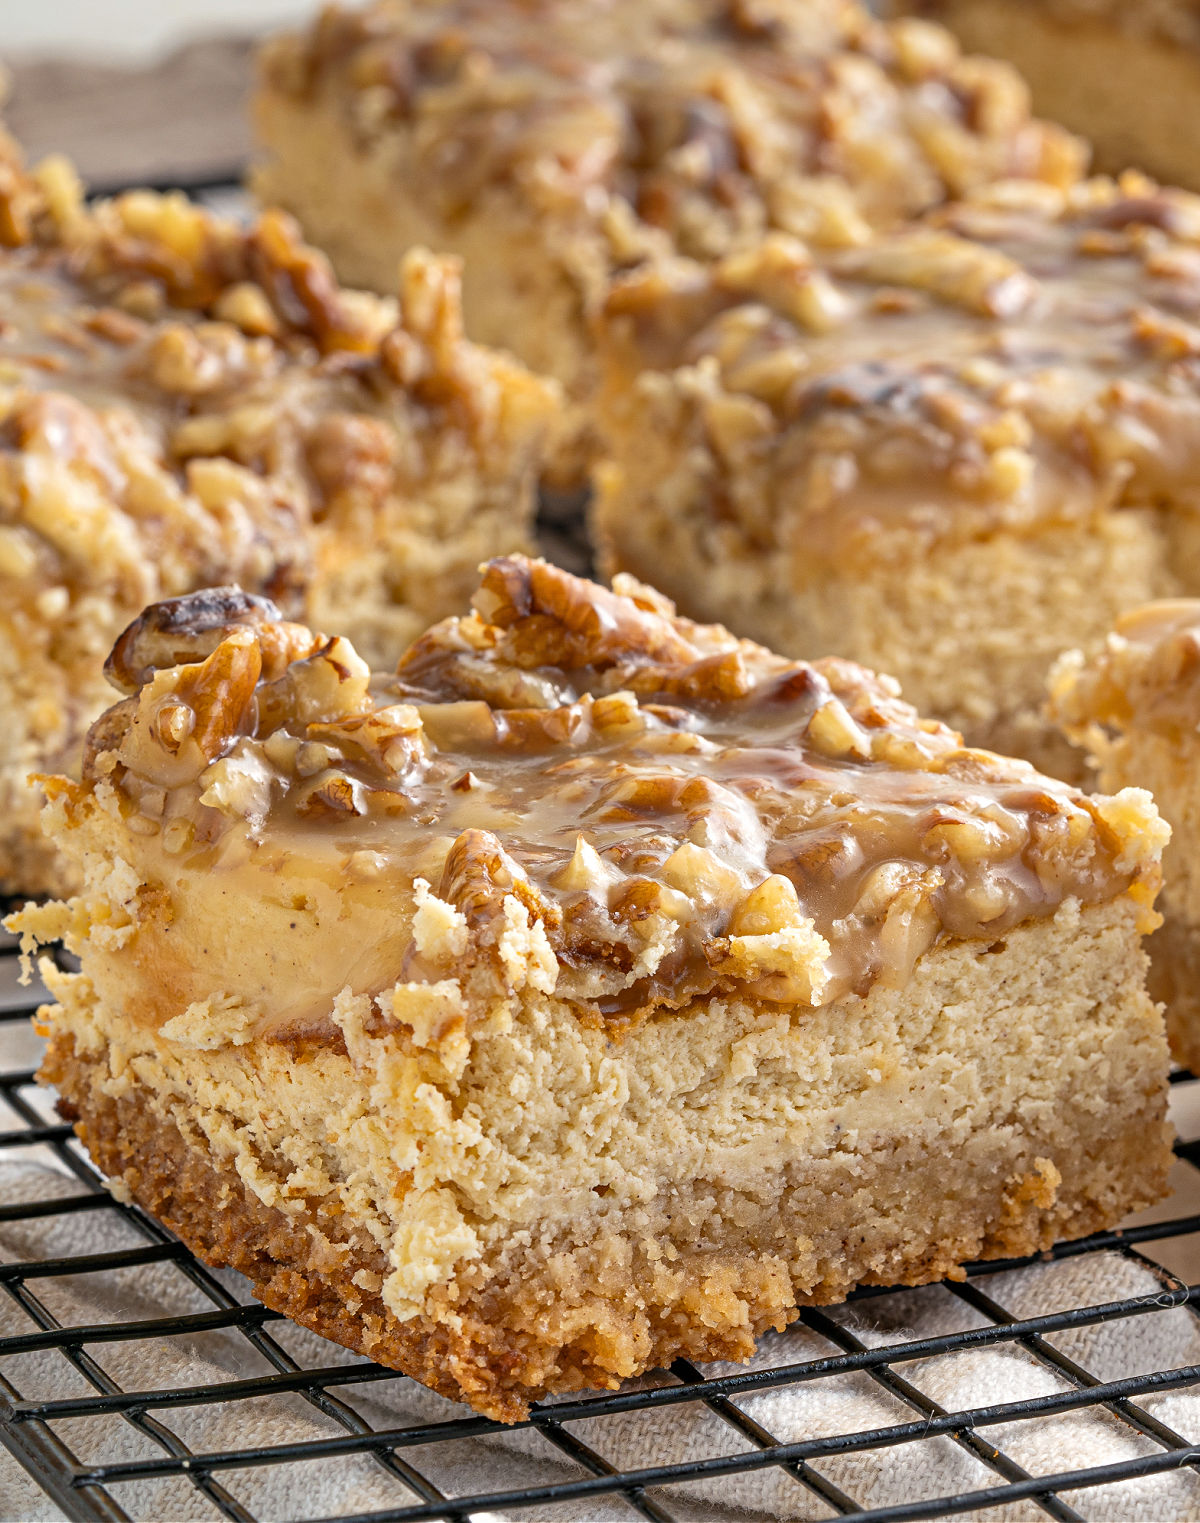 Gluten free cheesecake bars with cinnamon and pecan topping.